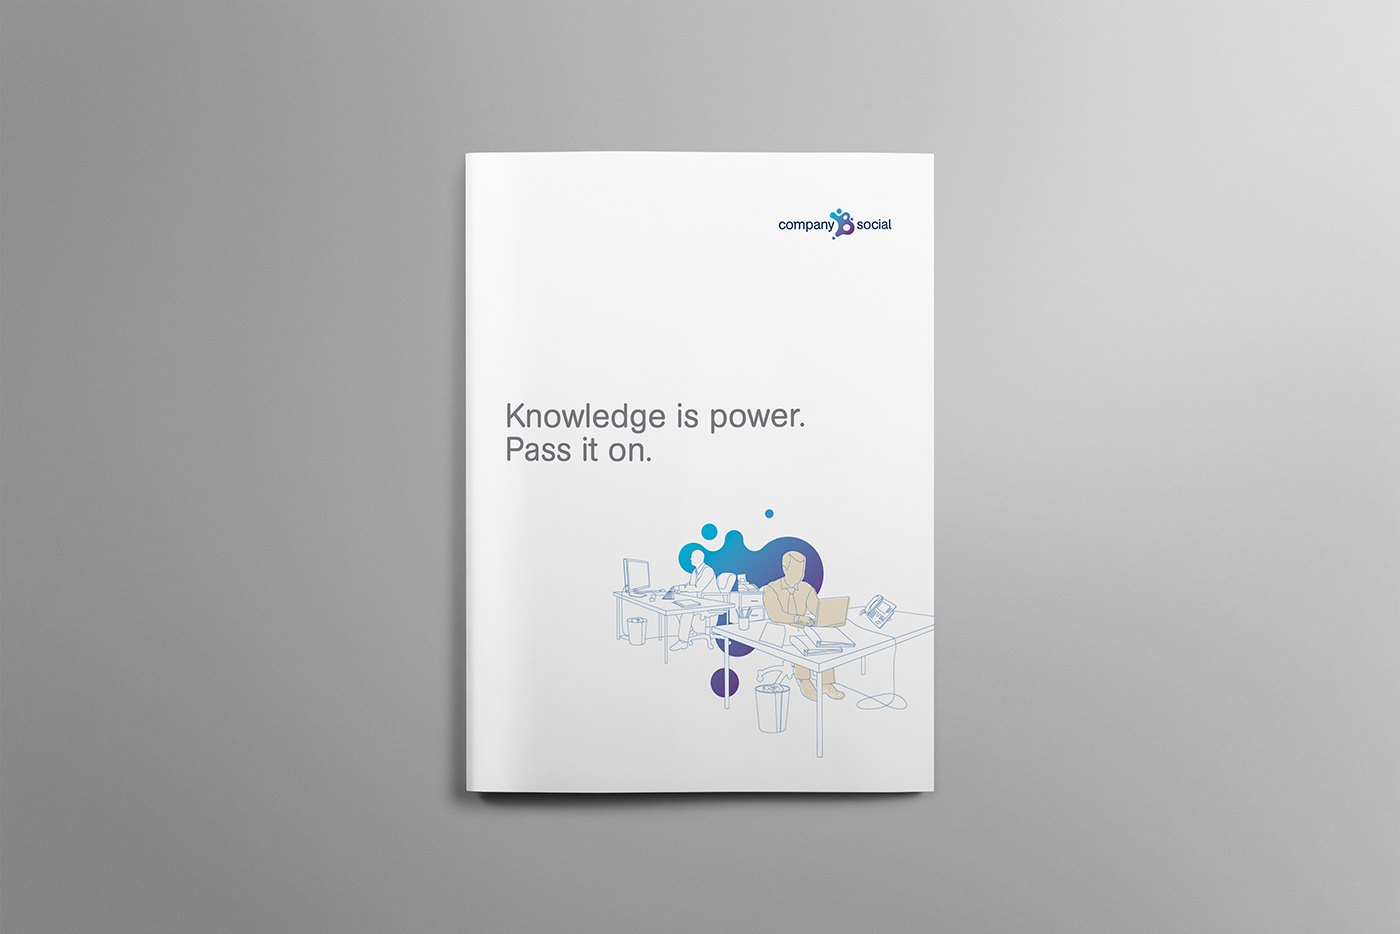 Cover for Comapny B includes minimalistic Illustration and a heading that says Knowledge is power.